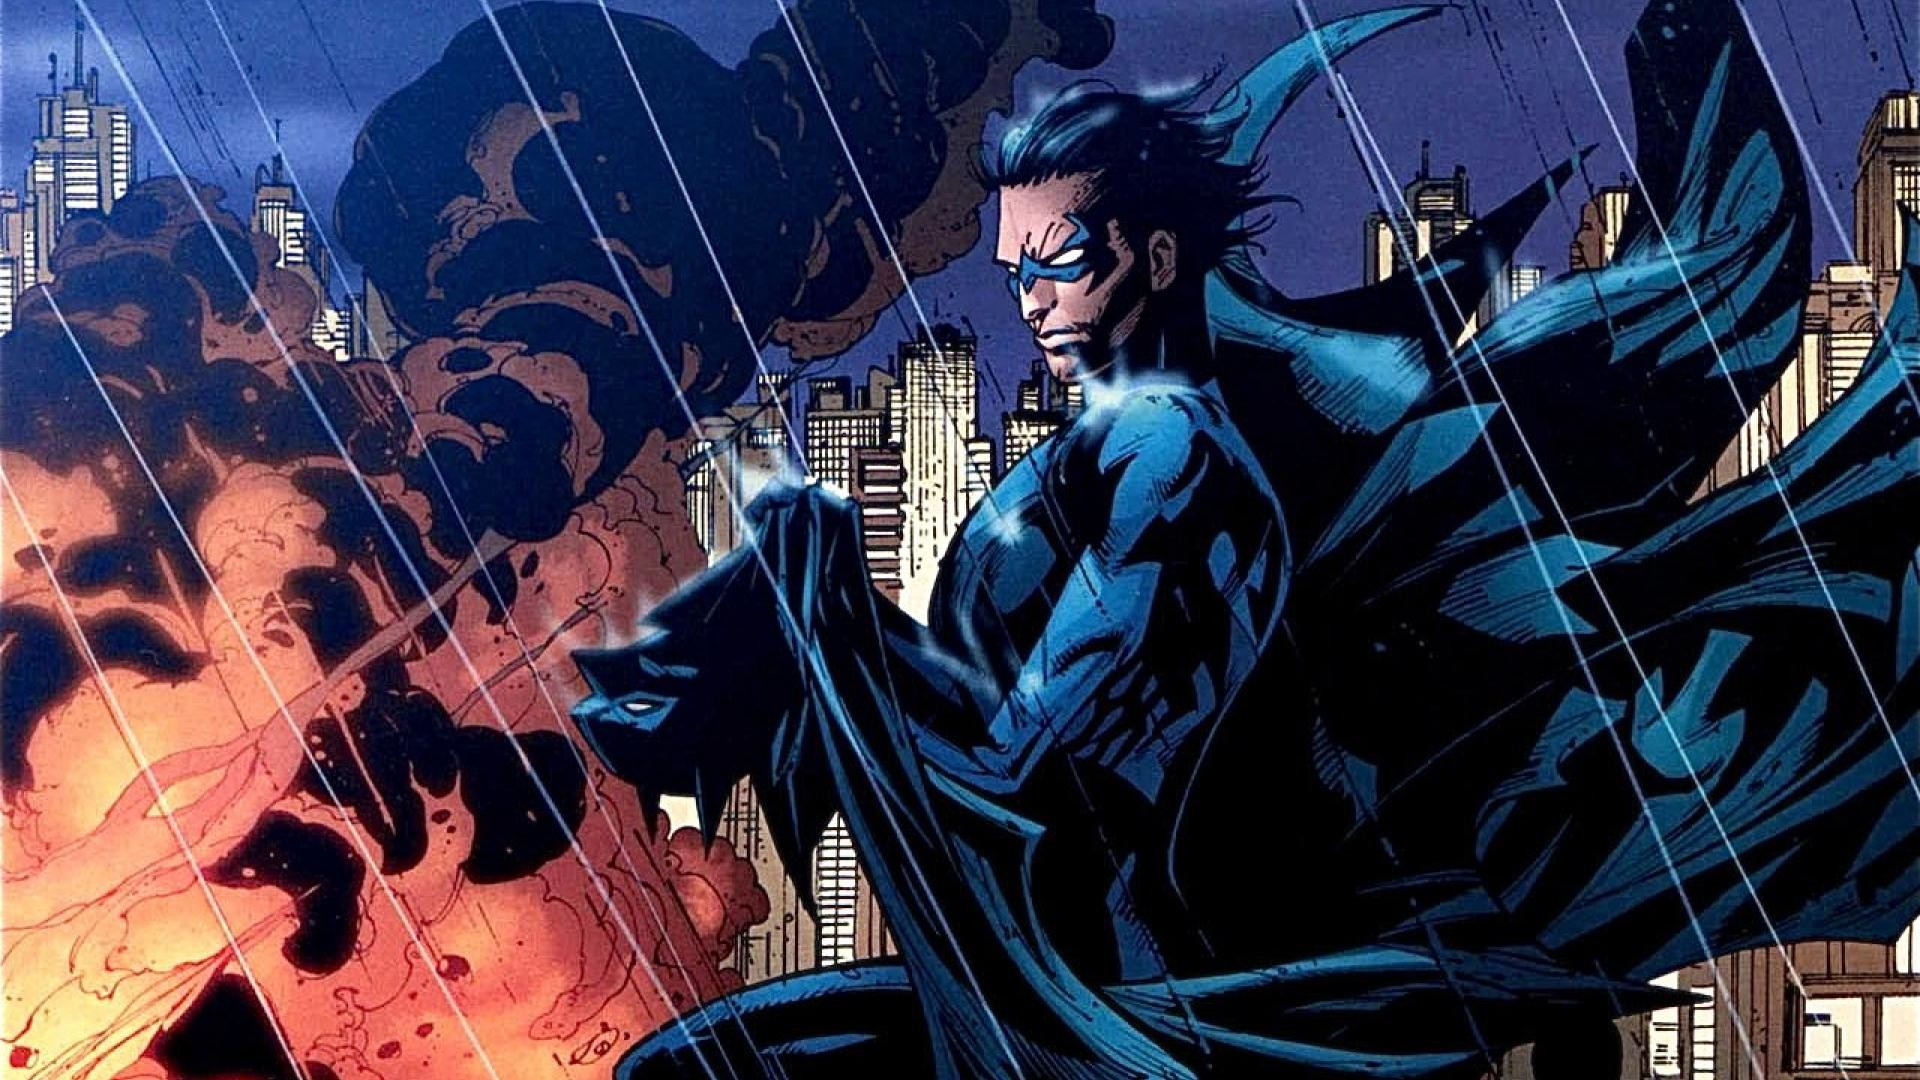 1920x1080 Nightwing-Background-HD-Wallpaper-Desktop.jpg (1920×1080)